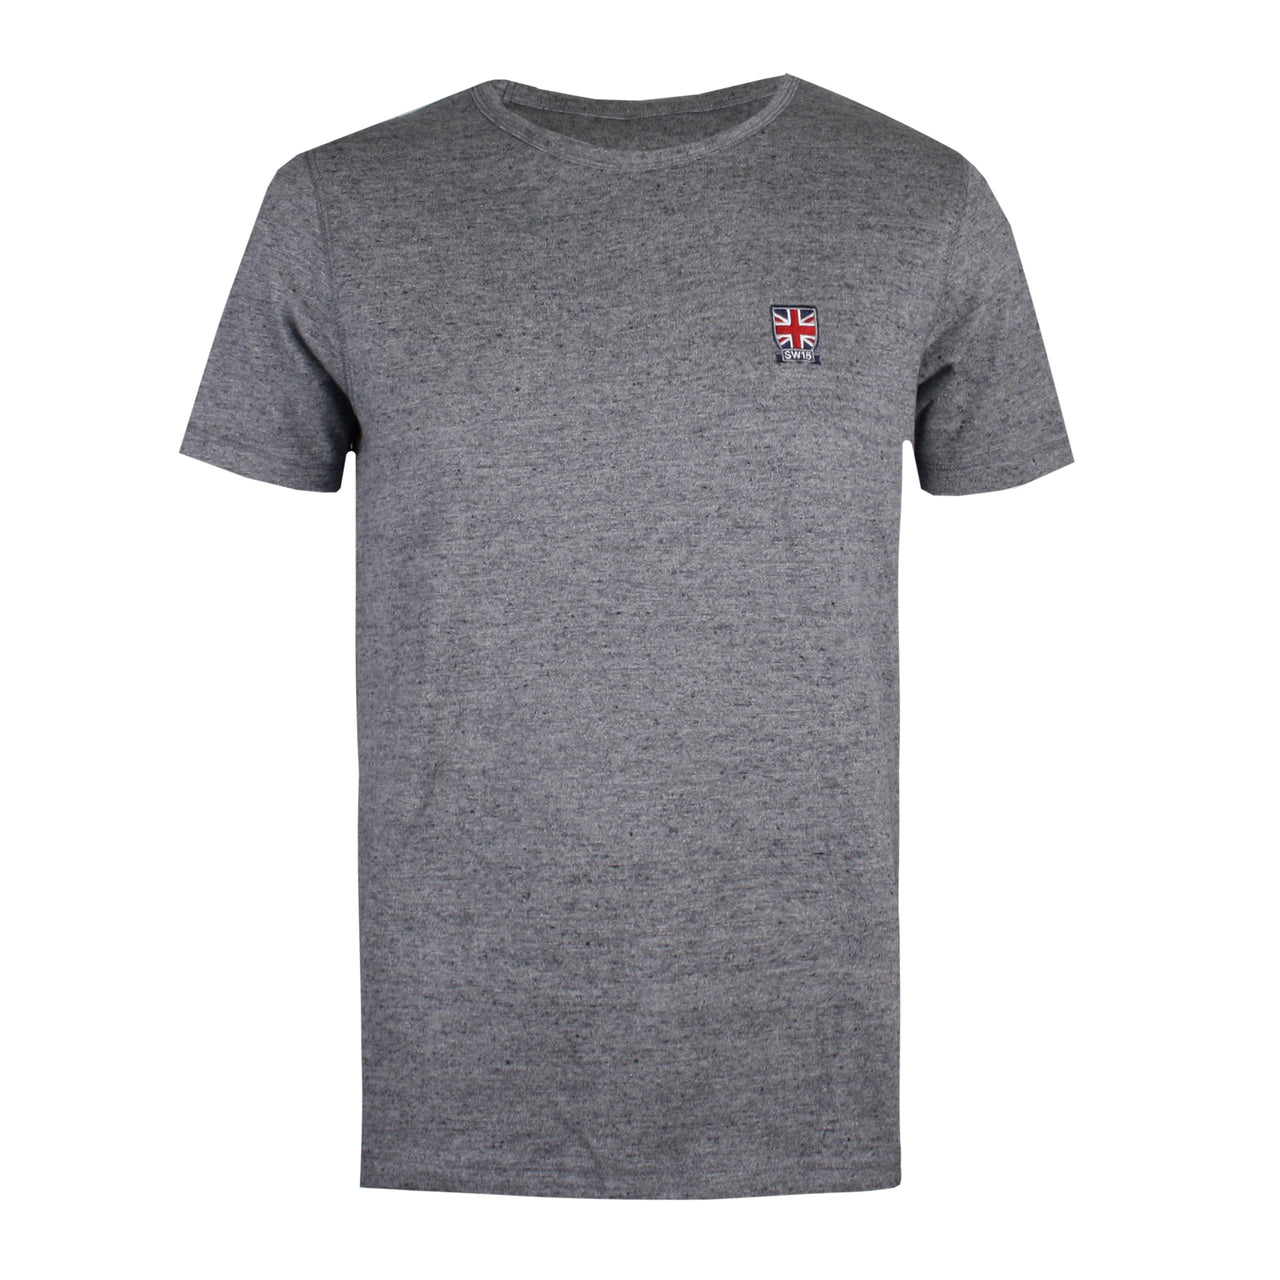 Union Jack T-shirt - Slub Heather Grey